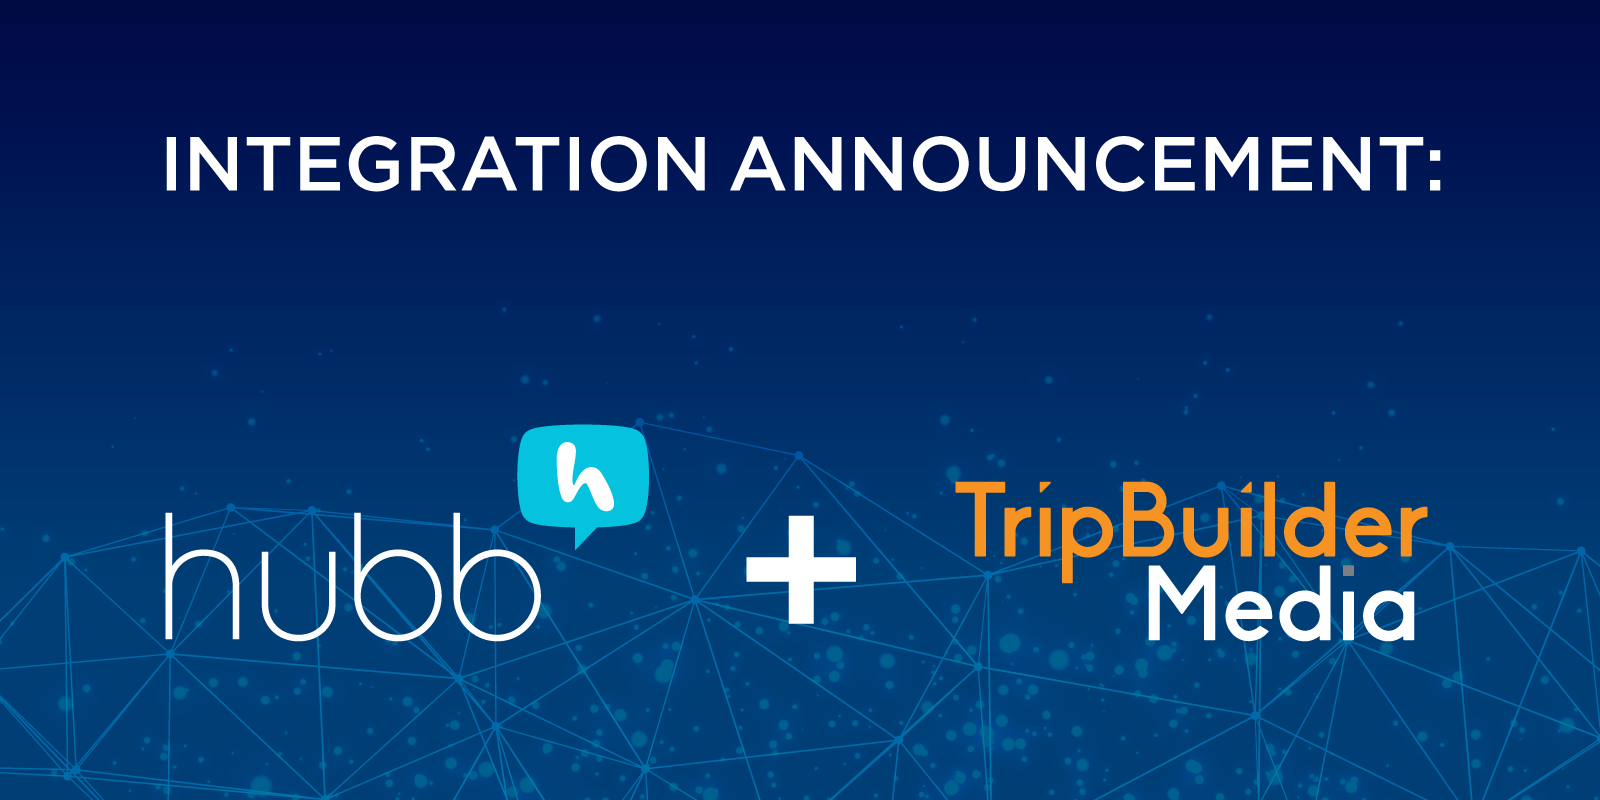 Integration-Announcement-Hubb+TripBuilder-Social